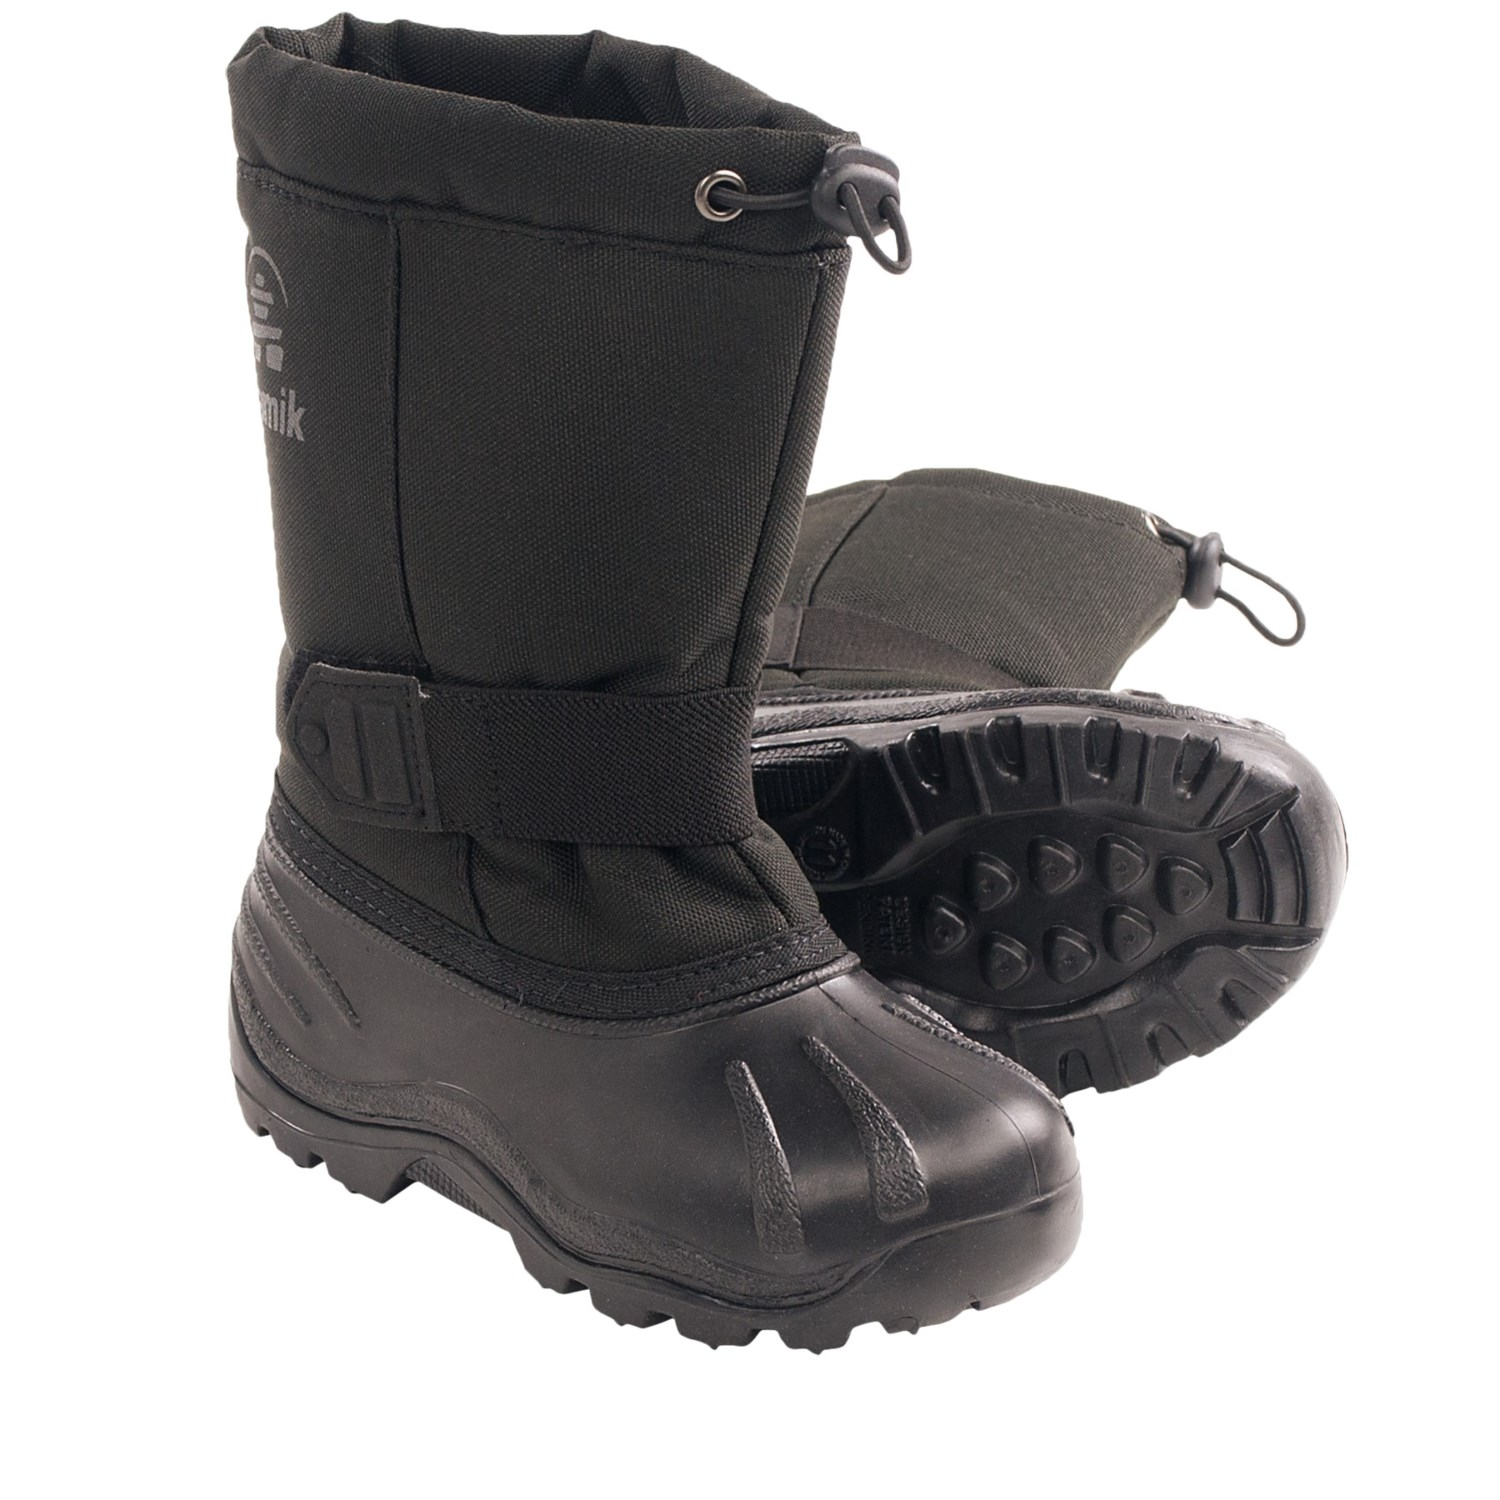 Buying Snow Boots For Toddlers | Homewood Mountain Ski Resort